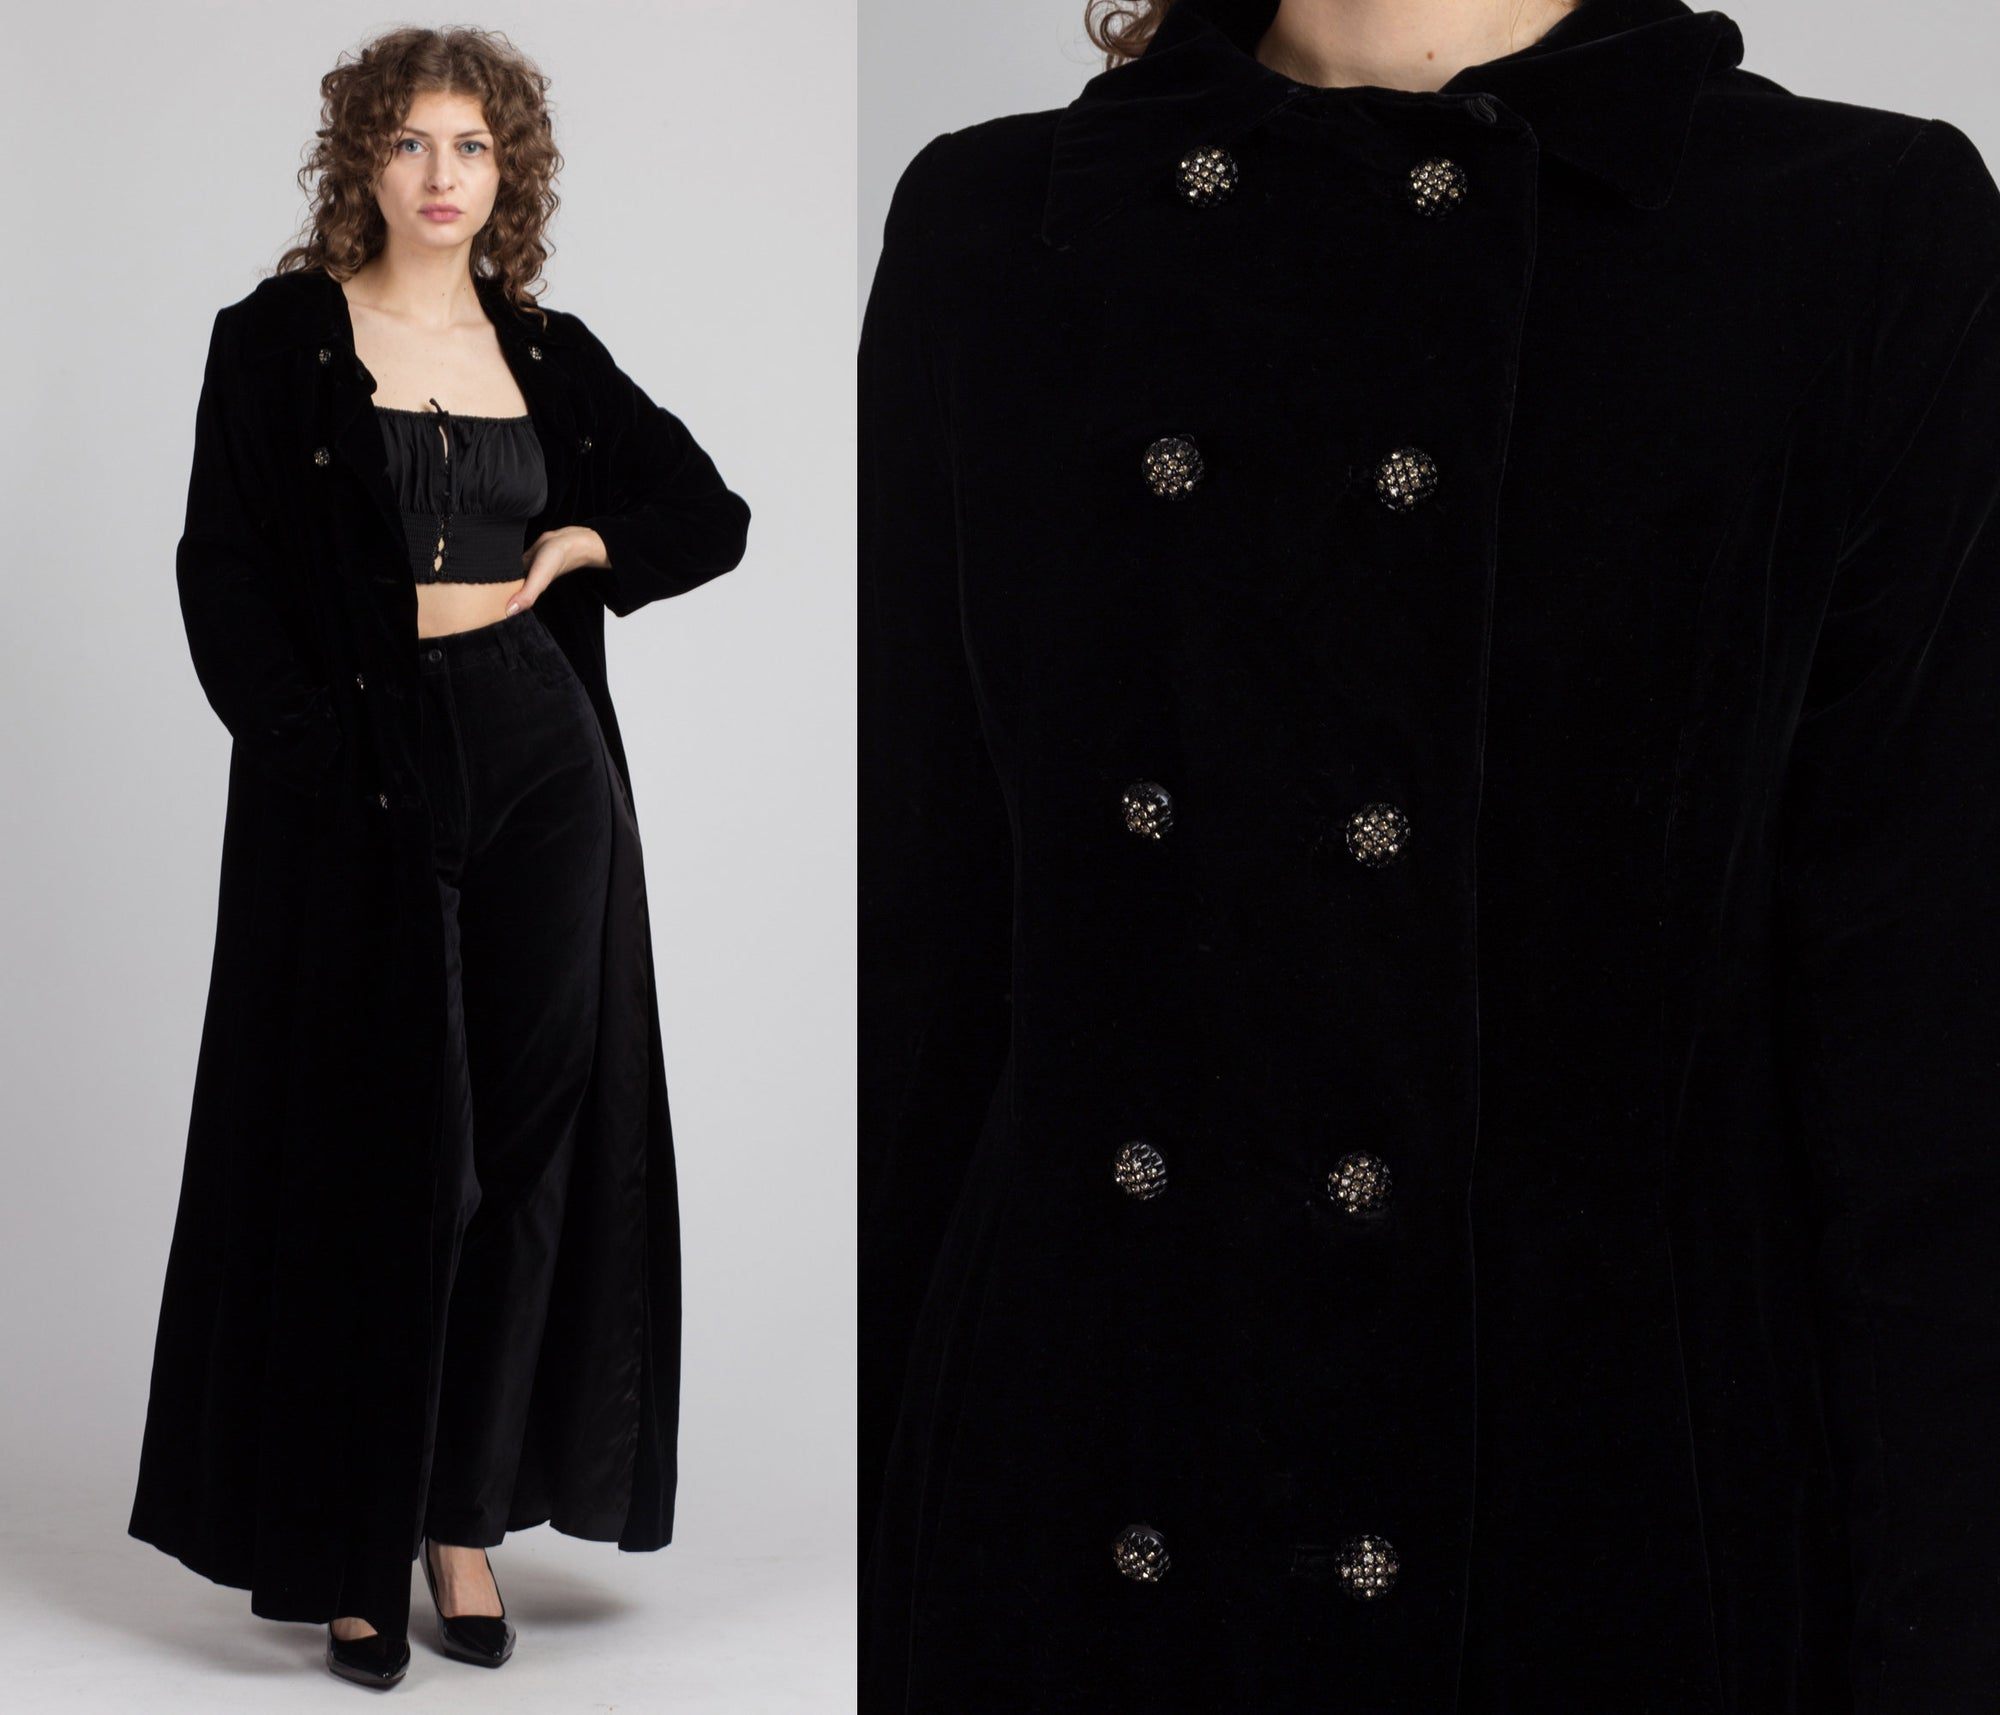 Vintage 1950s Long Black Velvet Coat - Medium